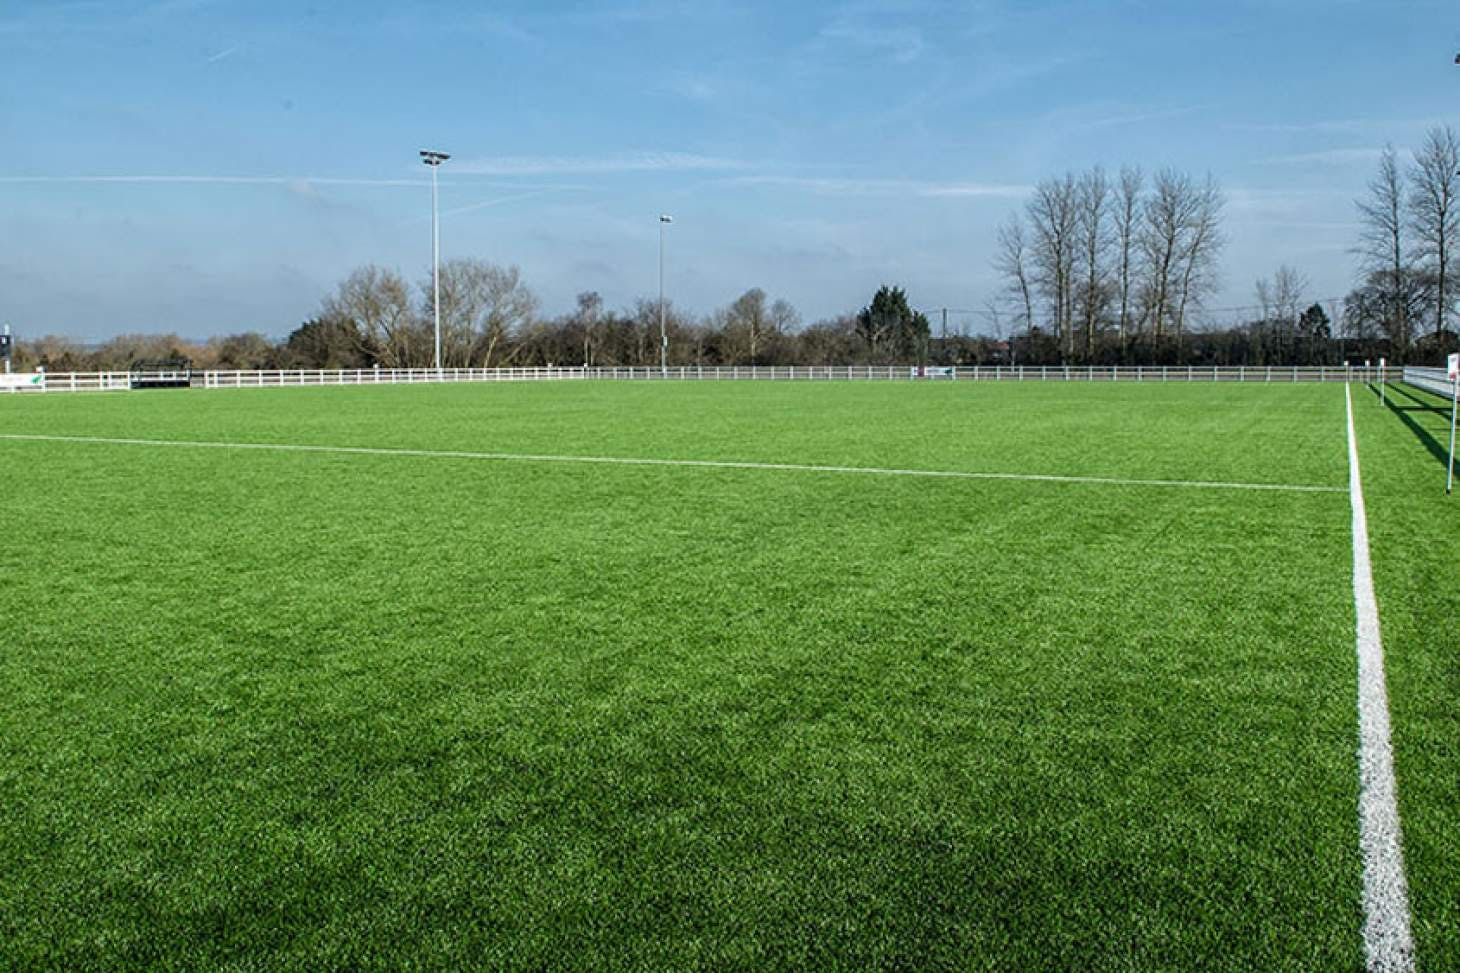 PlayFootball Stourbridge 8 a side | 3G Astroturf football pitch